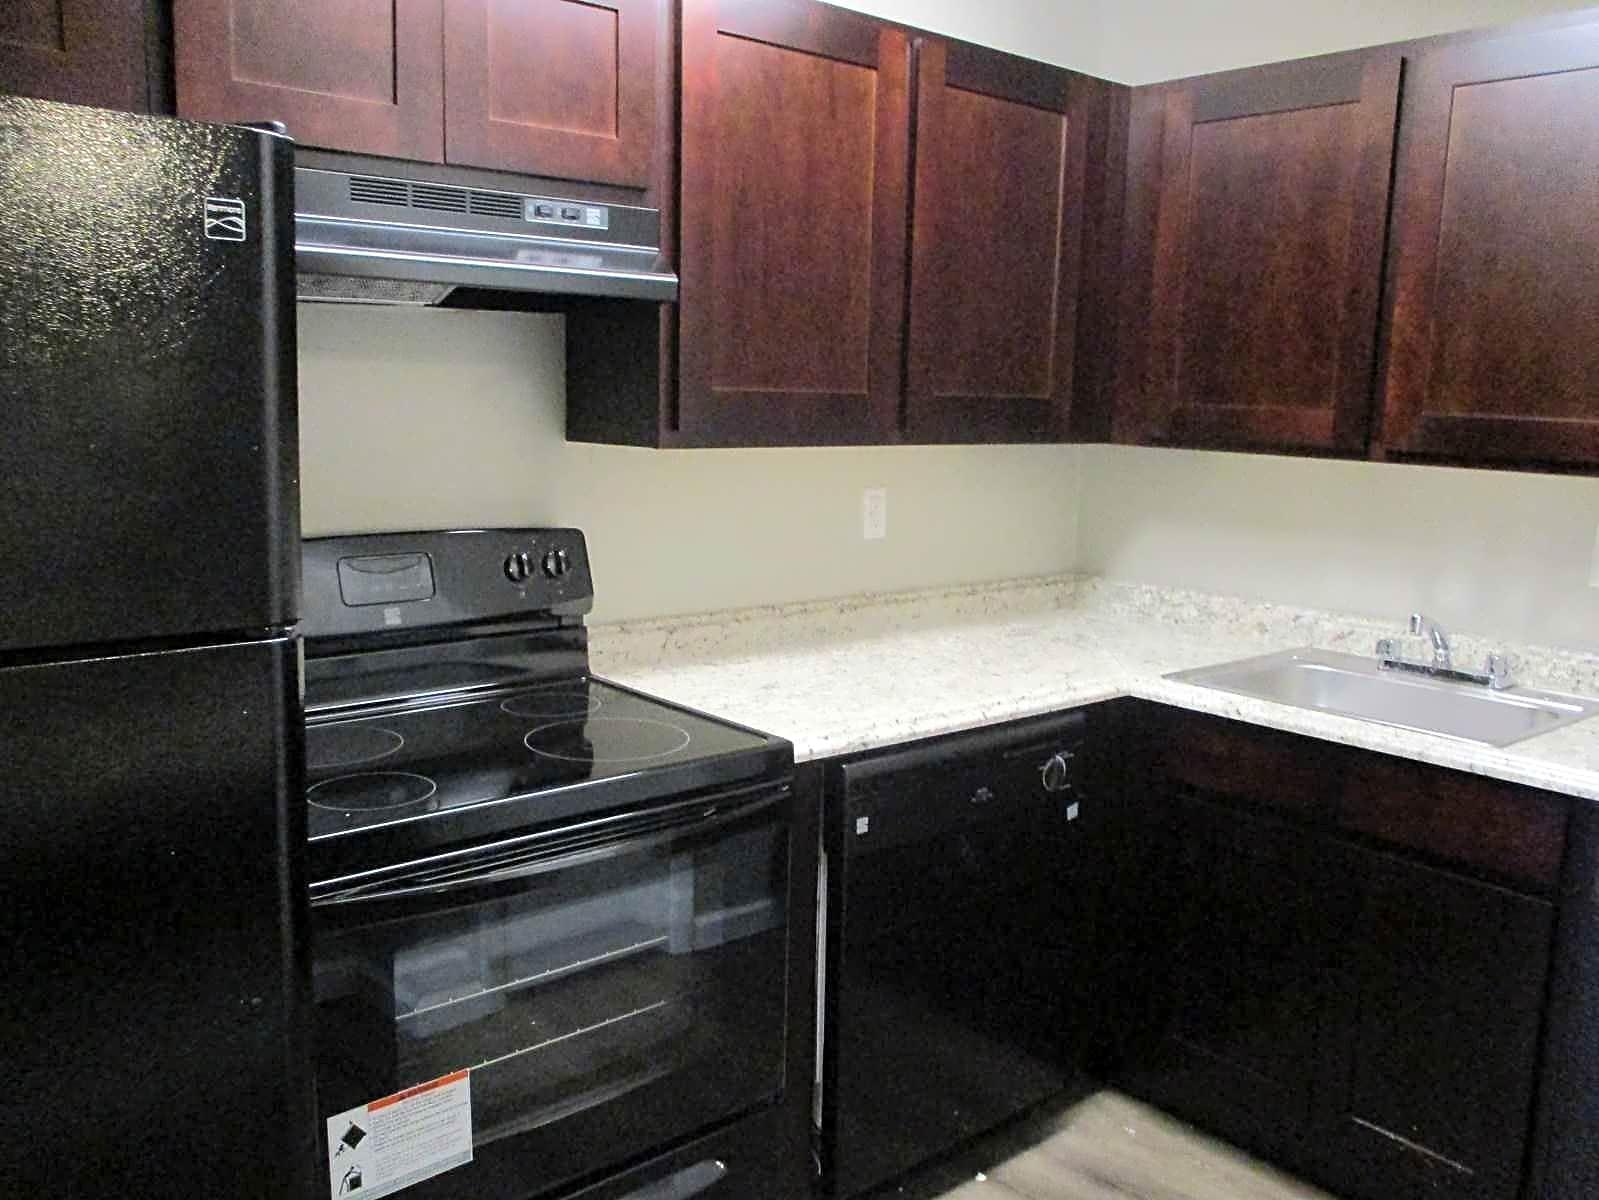 Opelika - Superb Apartment Nearby Fine Dining. ... Apartments photo #1